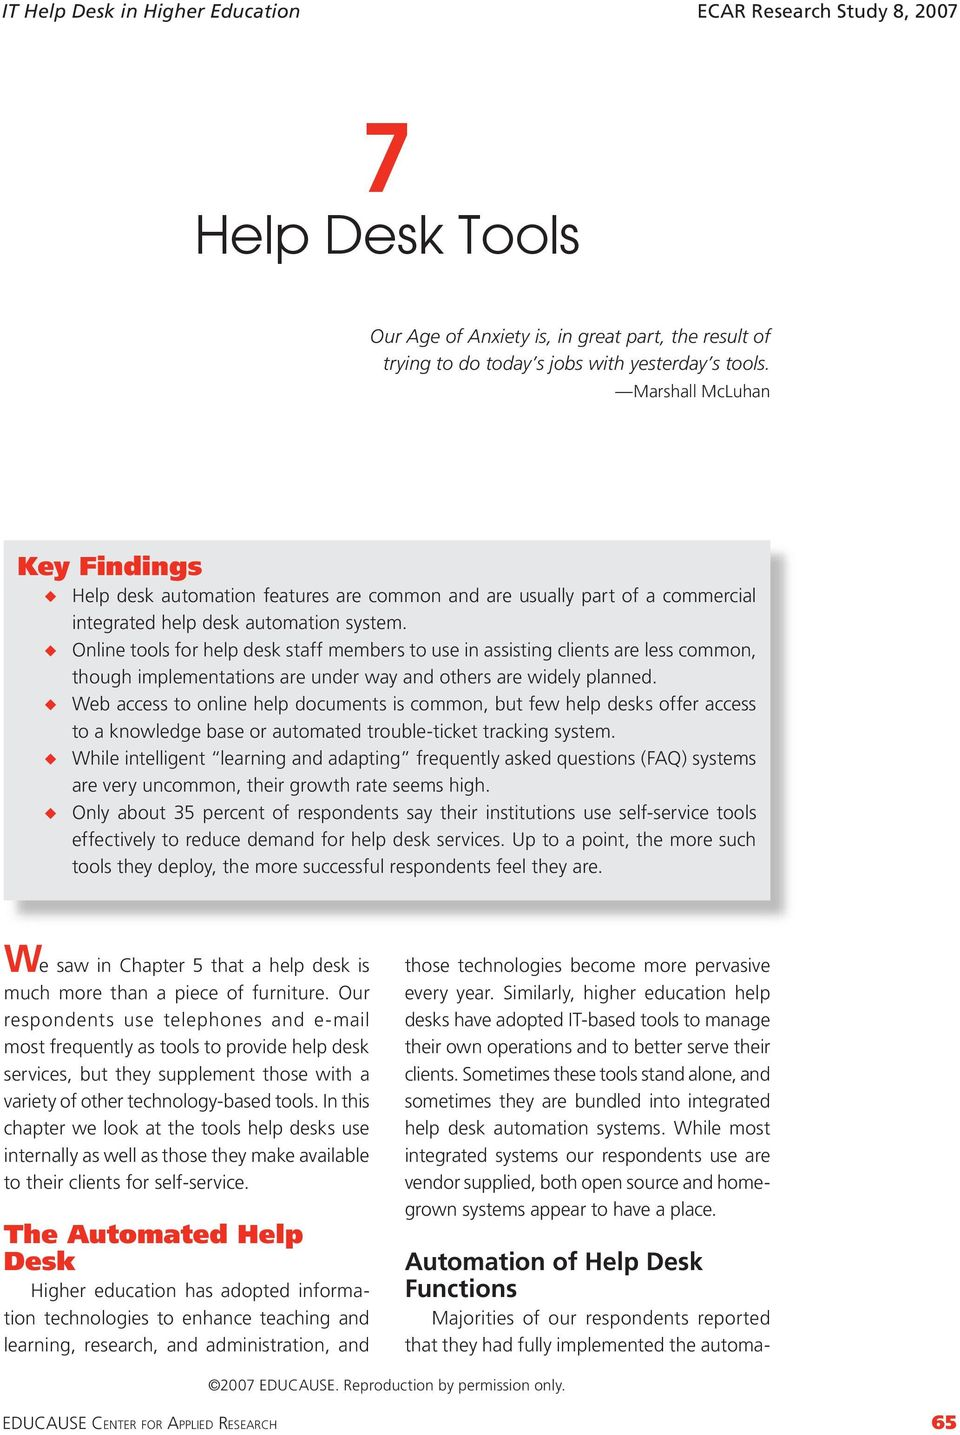 Online tools for help desk staff members to se in assisting clients are less common, thogh implementations are nder way and others are widely planned.